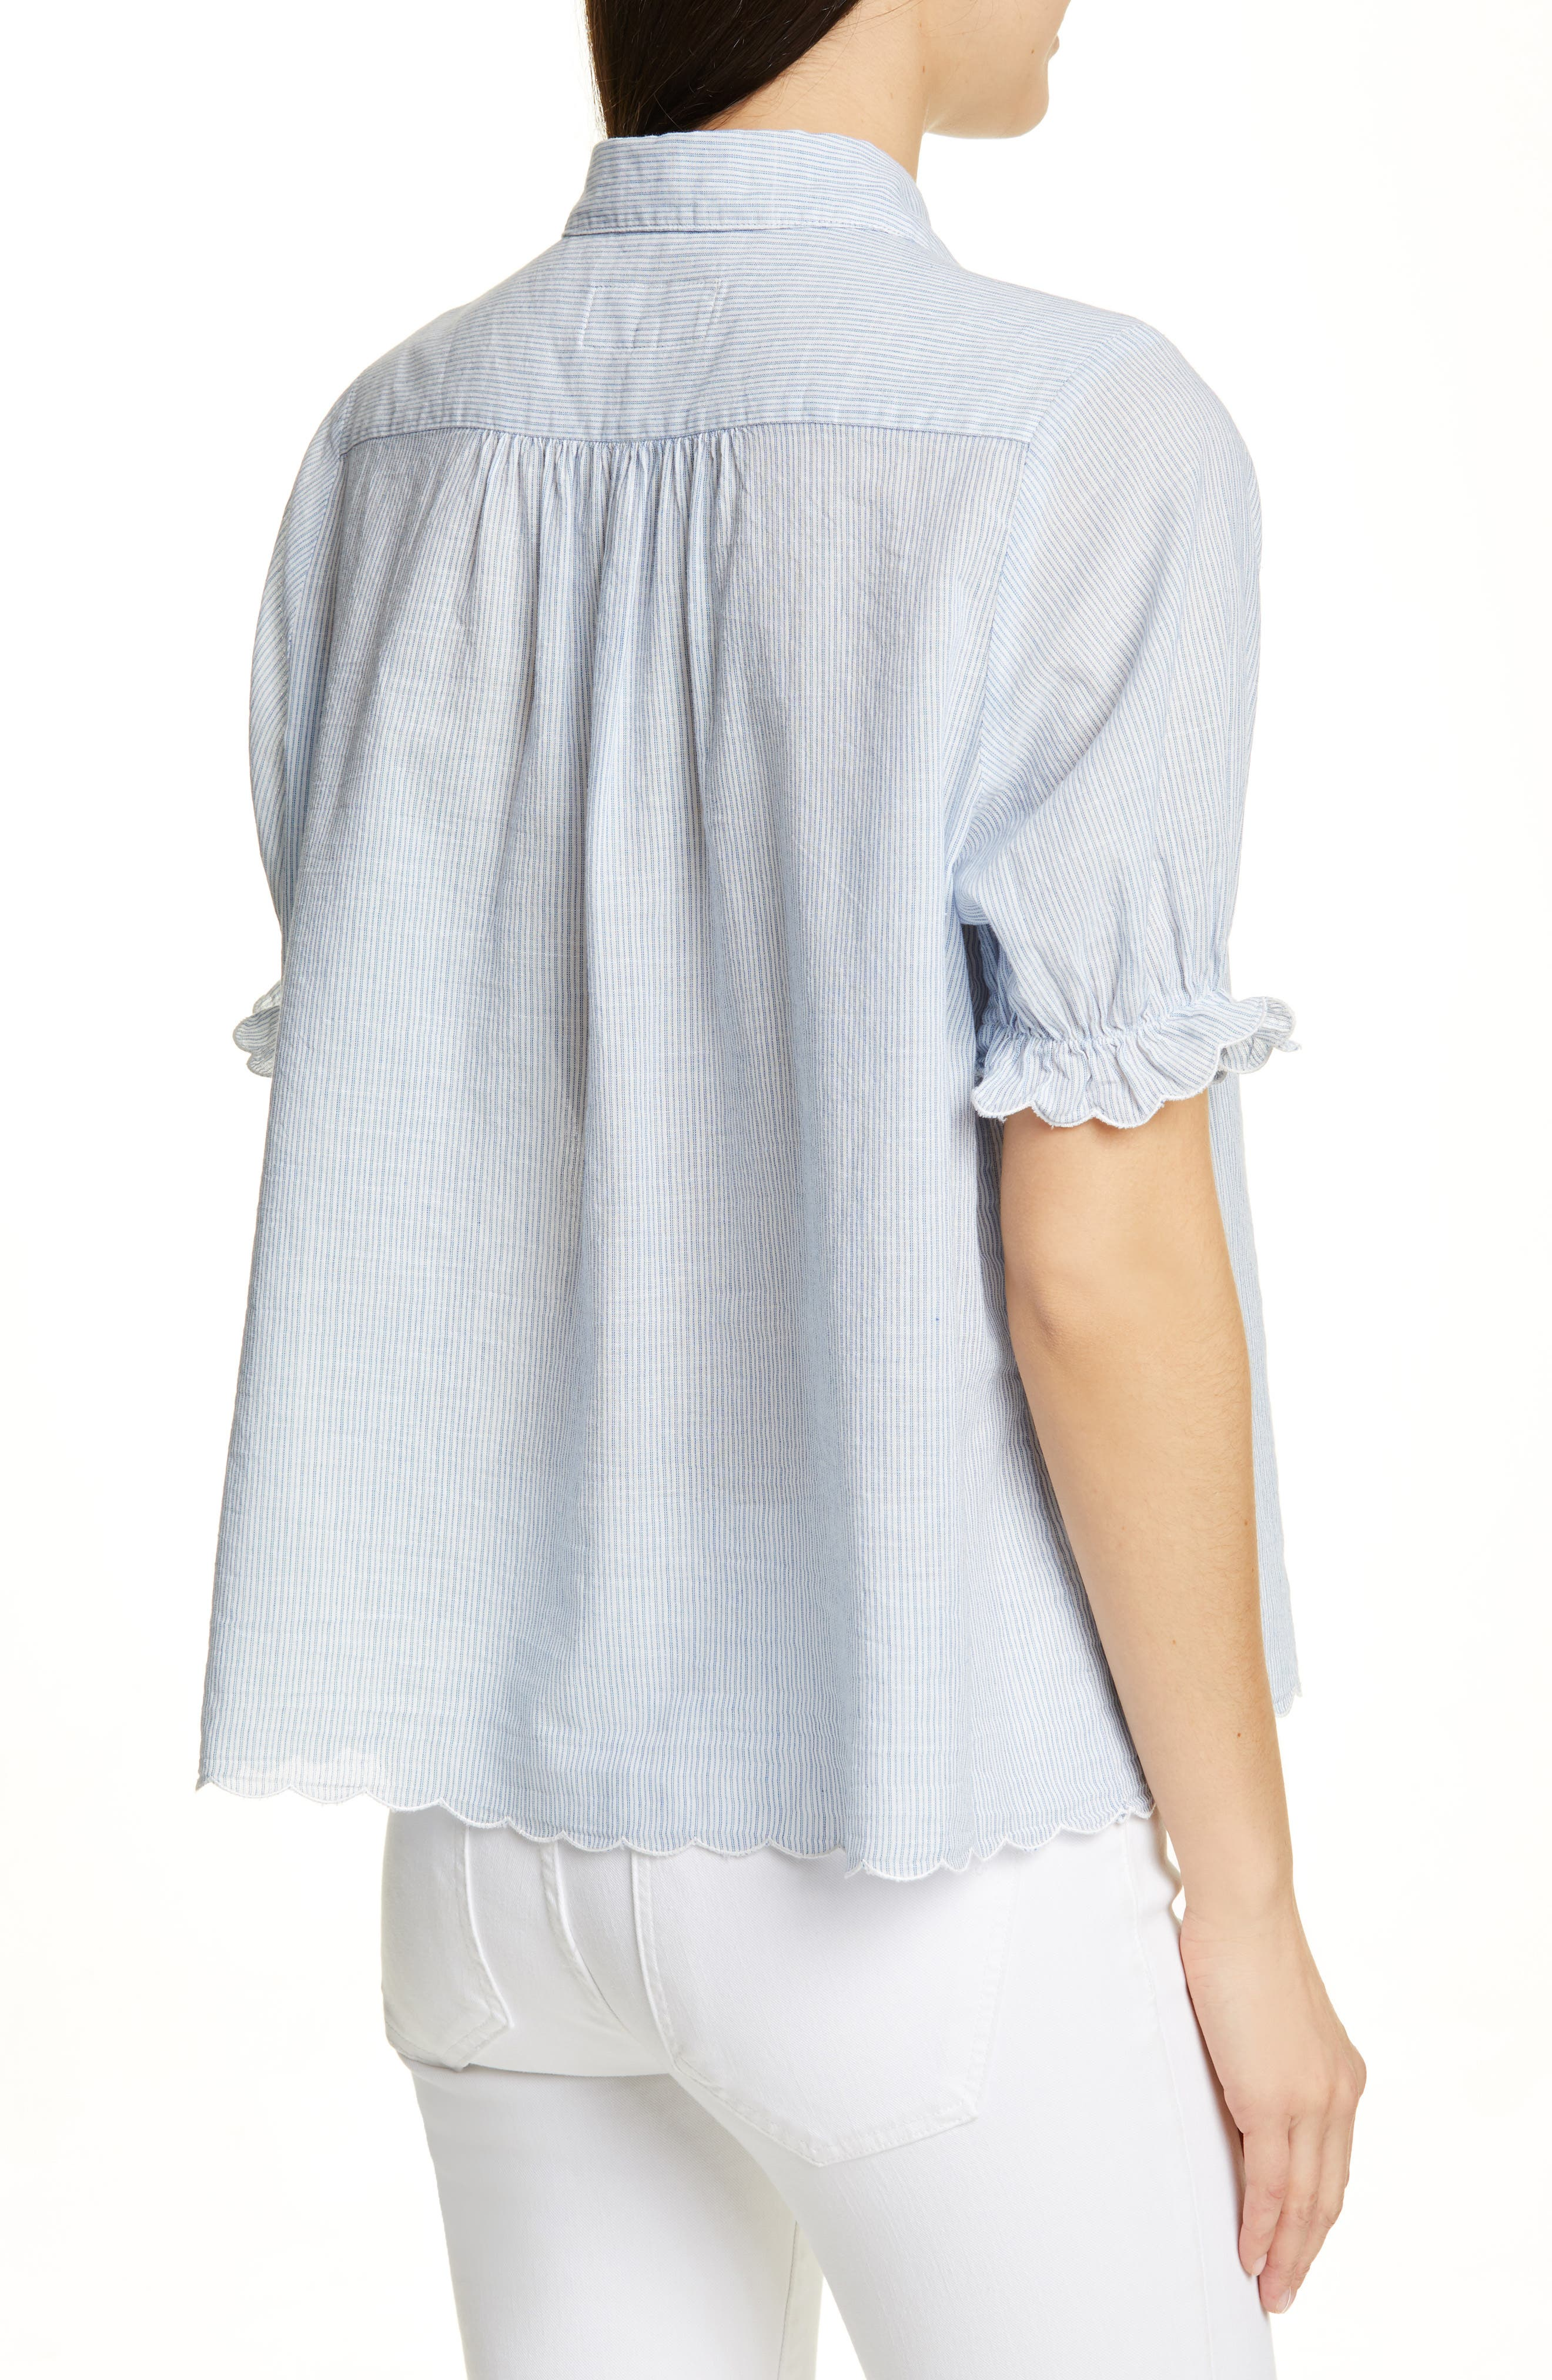 THE GREAT., The Kerchief Embroidered Cotton Top, Alternate thumbnail 2, color, CAROLINA STRIPE